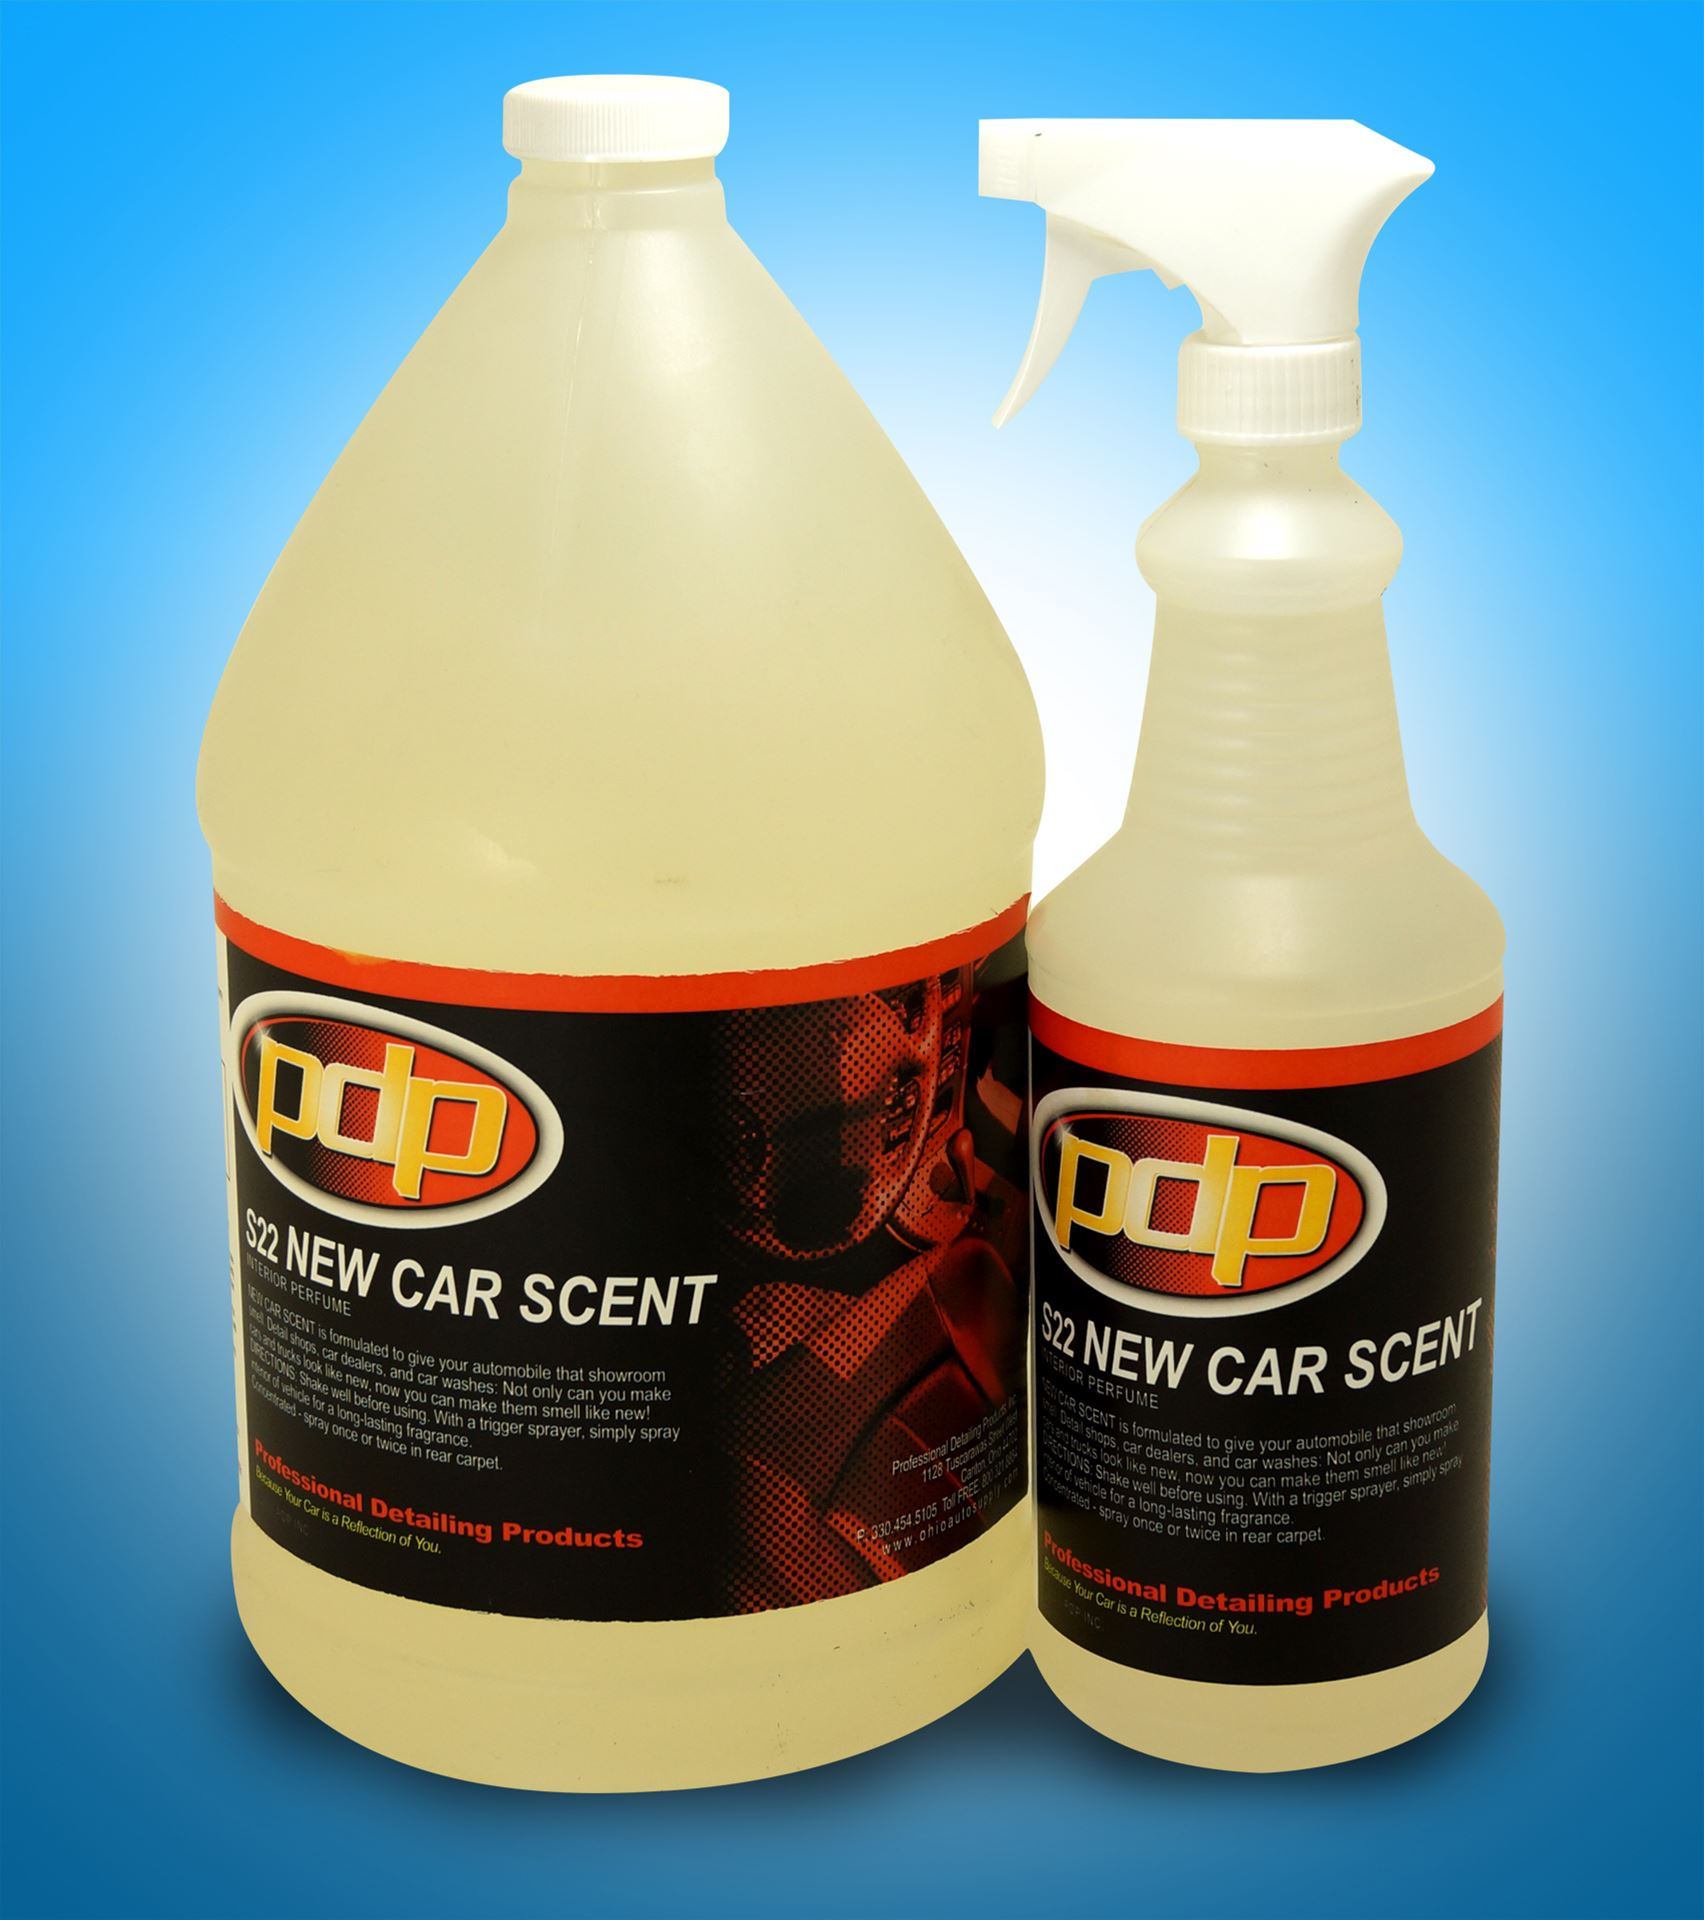 New Car Scent Professional Detailing Products Because Your Car Is A Reflection Of You